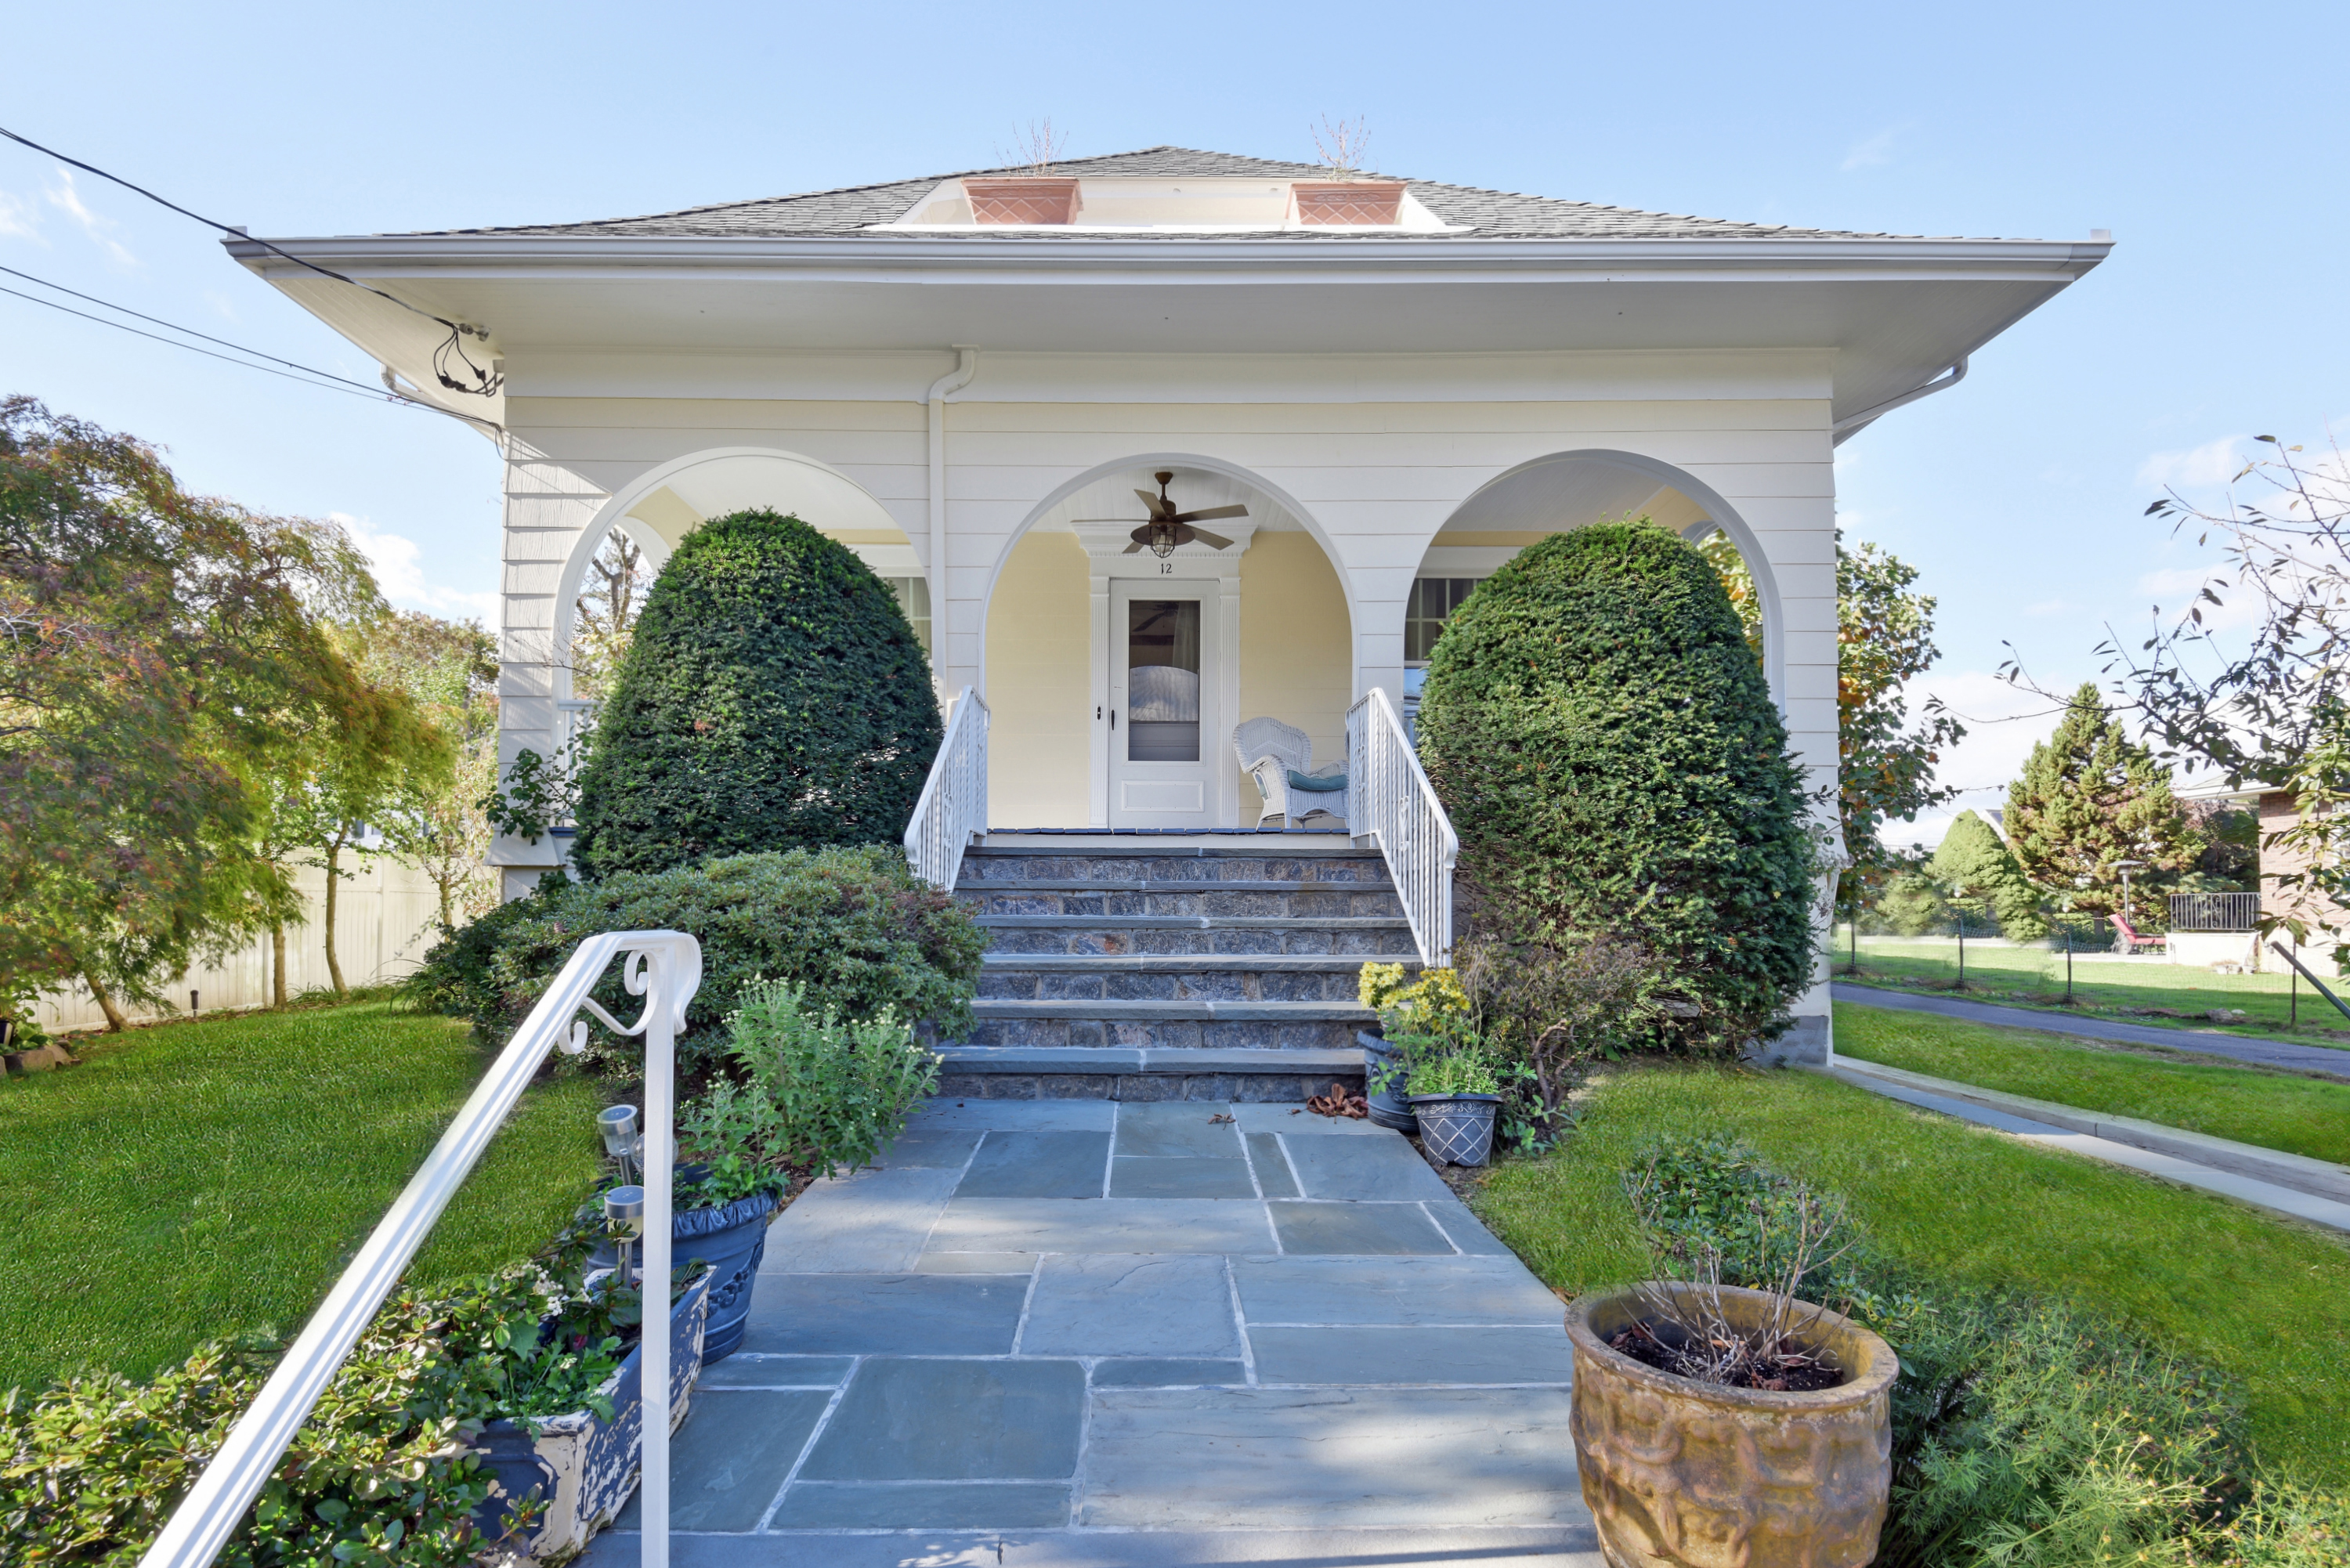 Single Family Home for Sale at Charming Carriage House 12 Chester Place New Rochelle, New York 10801 United States